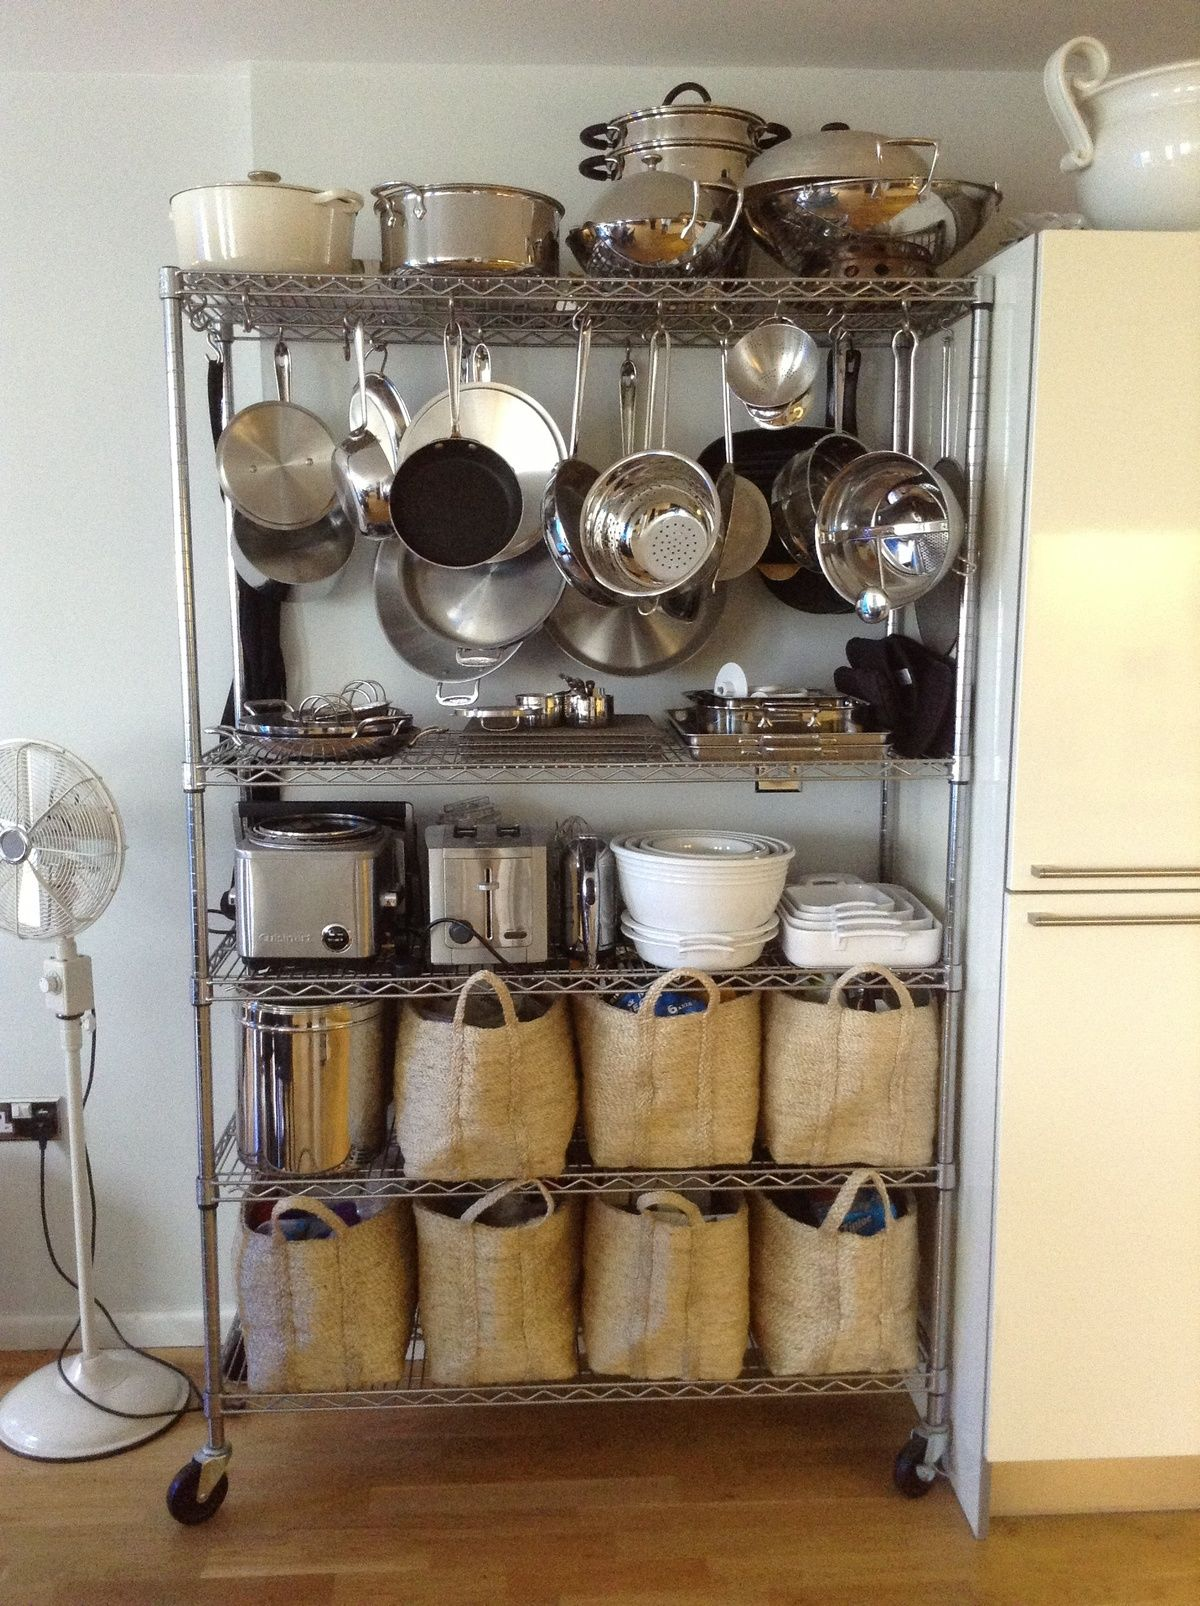 a pan watch pans make how pot pots rack youtube and to for hanging